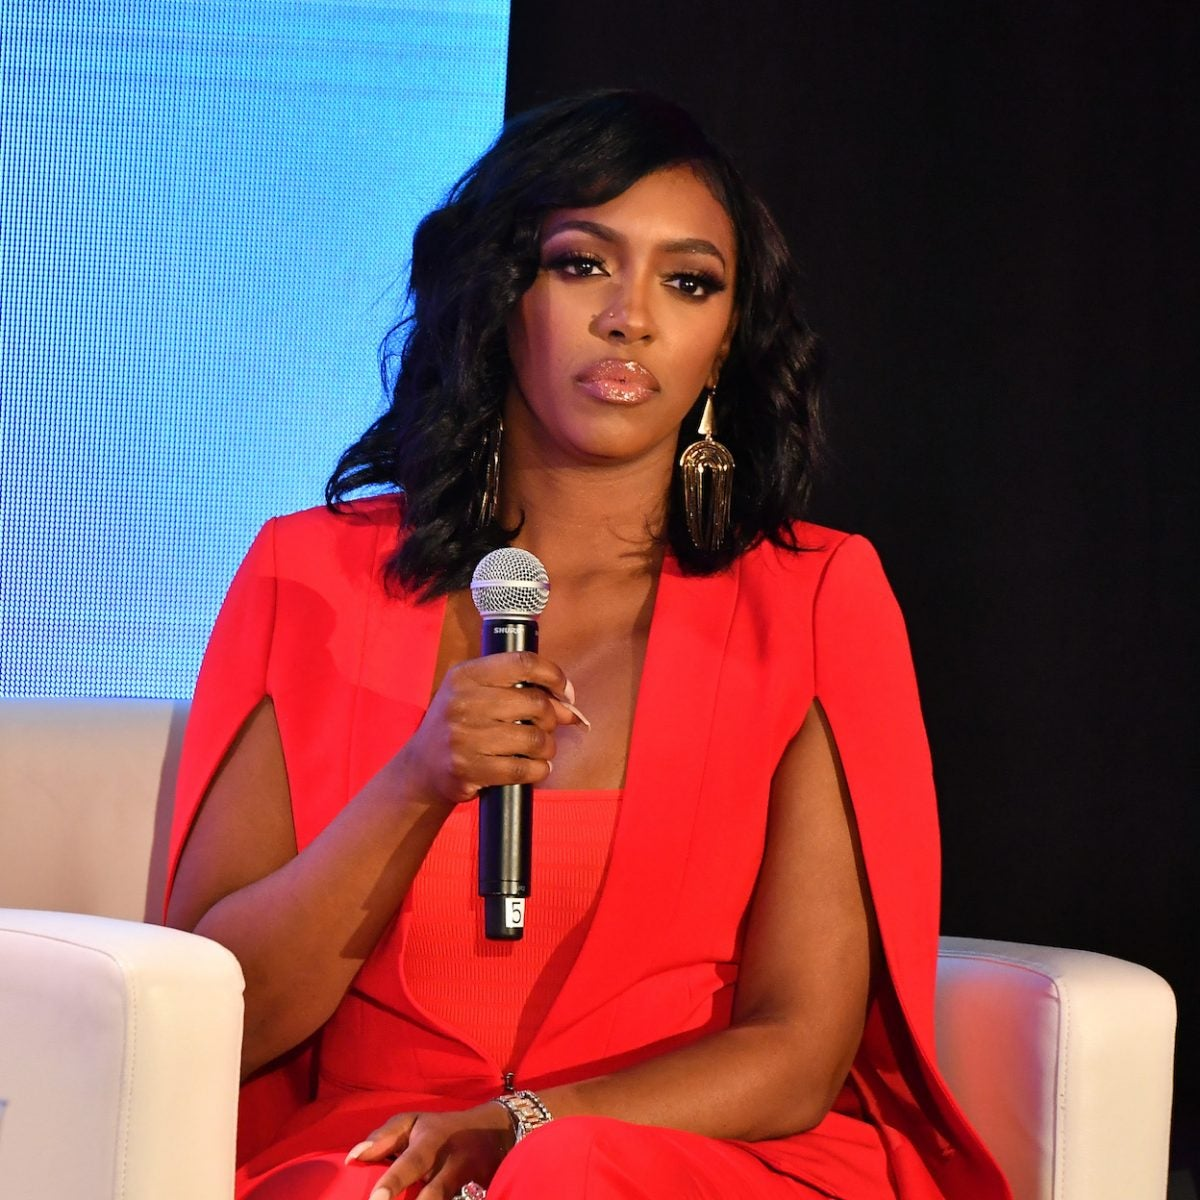 Porsha Williams Reveals She Was Chased By The KKK At 6 Years Old